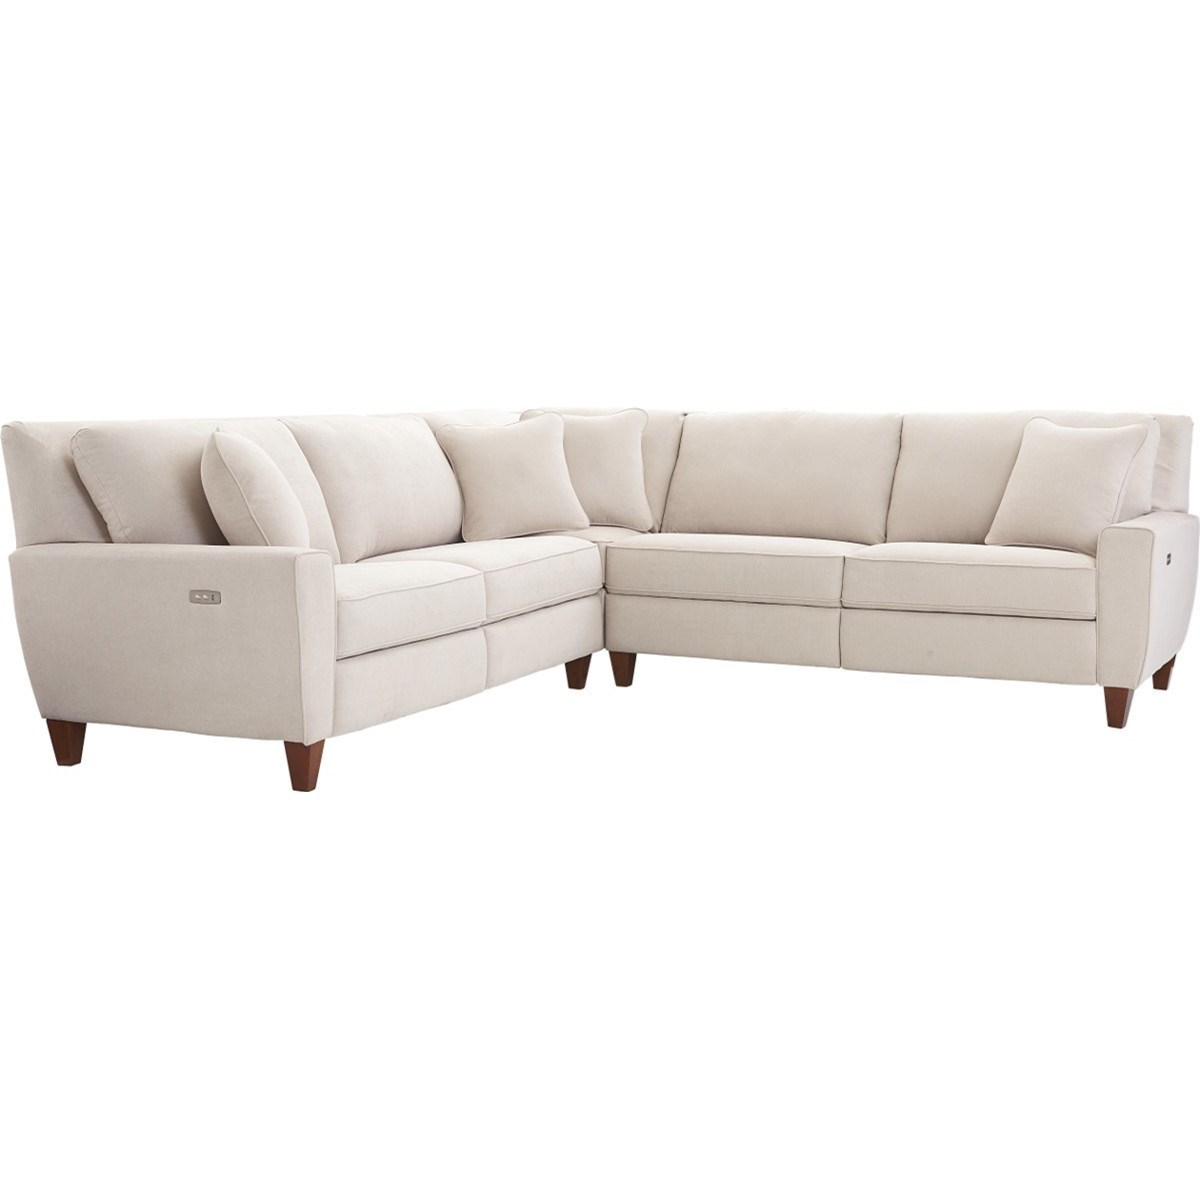 La z boy edie three piece power reclining sectional sofa for 3 pc sectional sofa with recliners